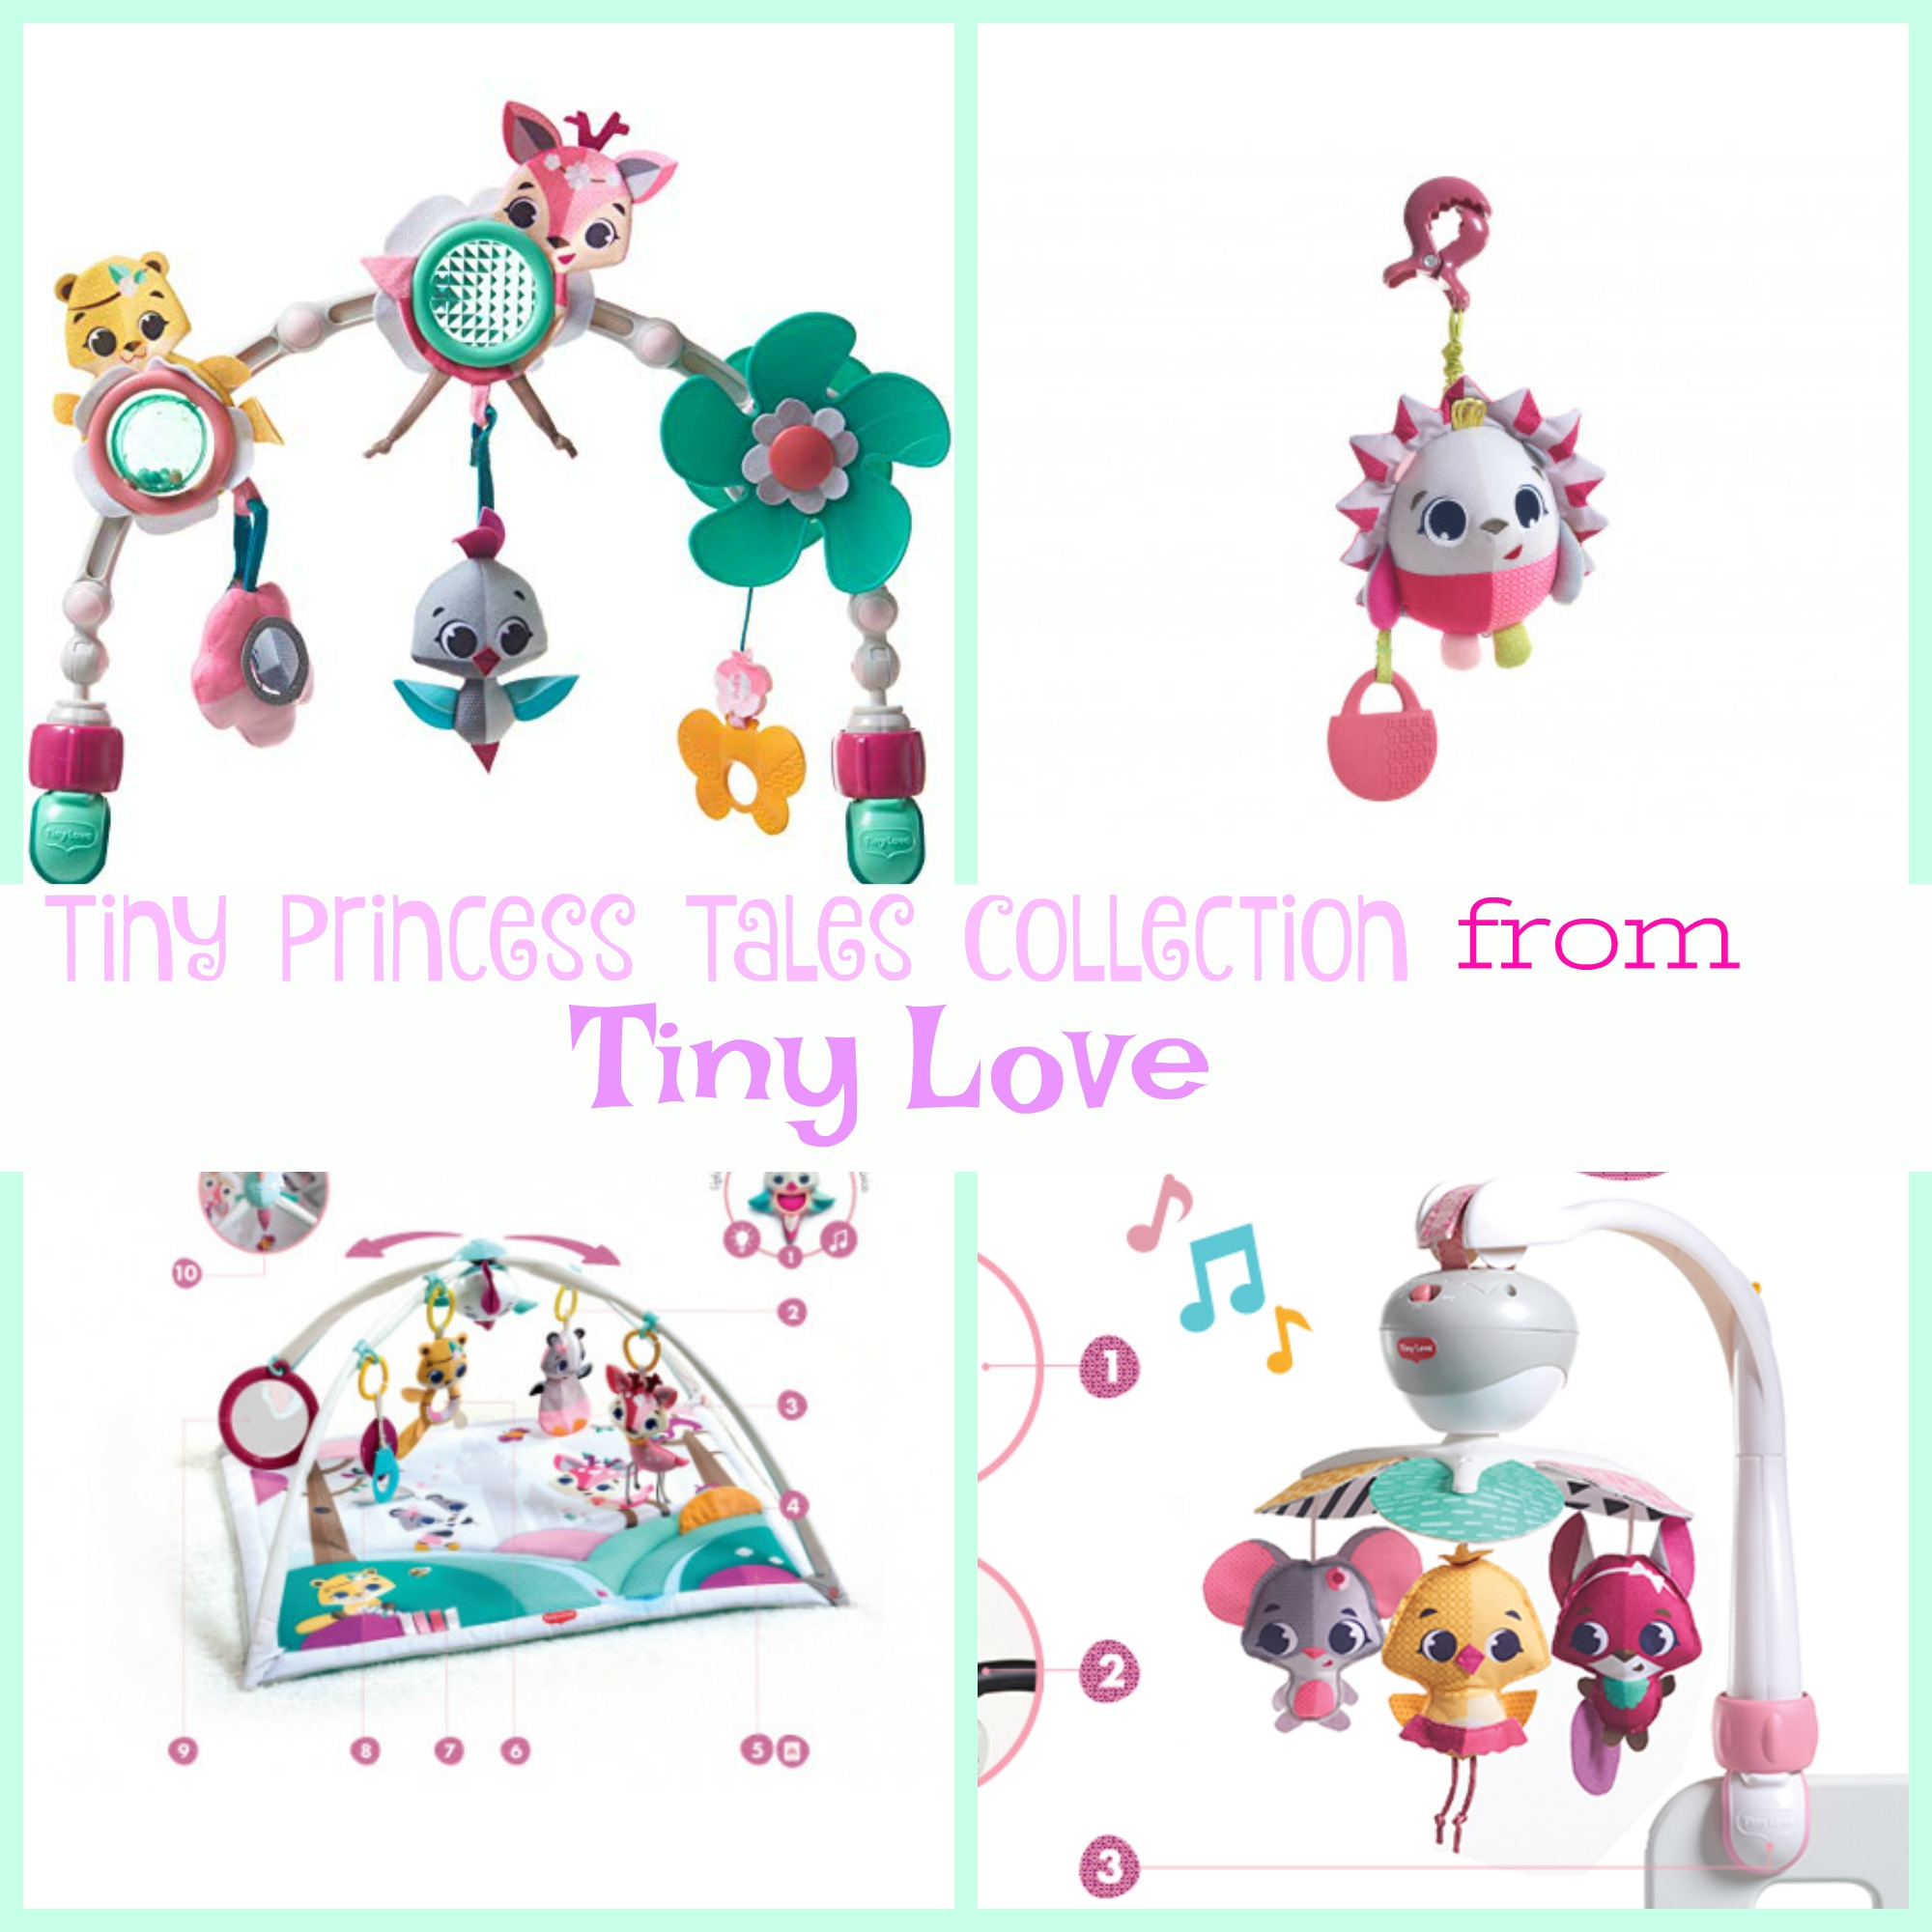 Tiny Princess Tales Collection